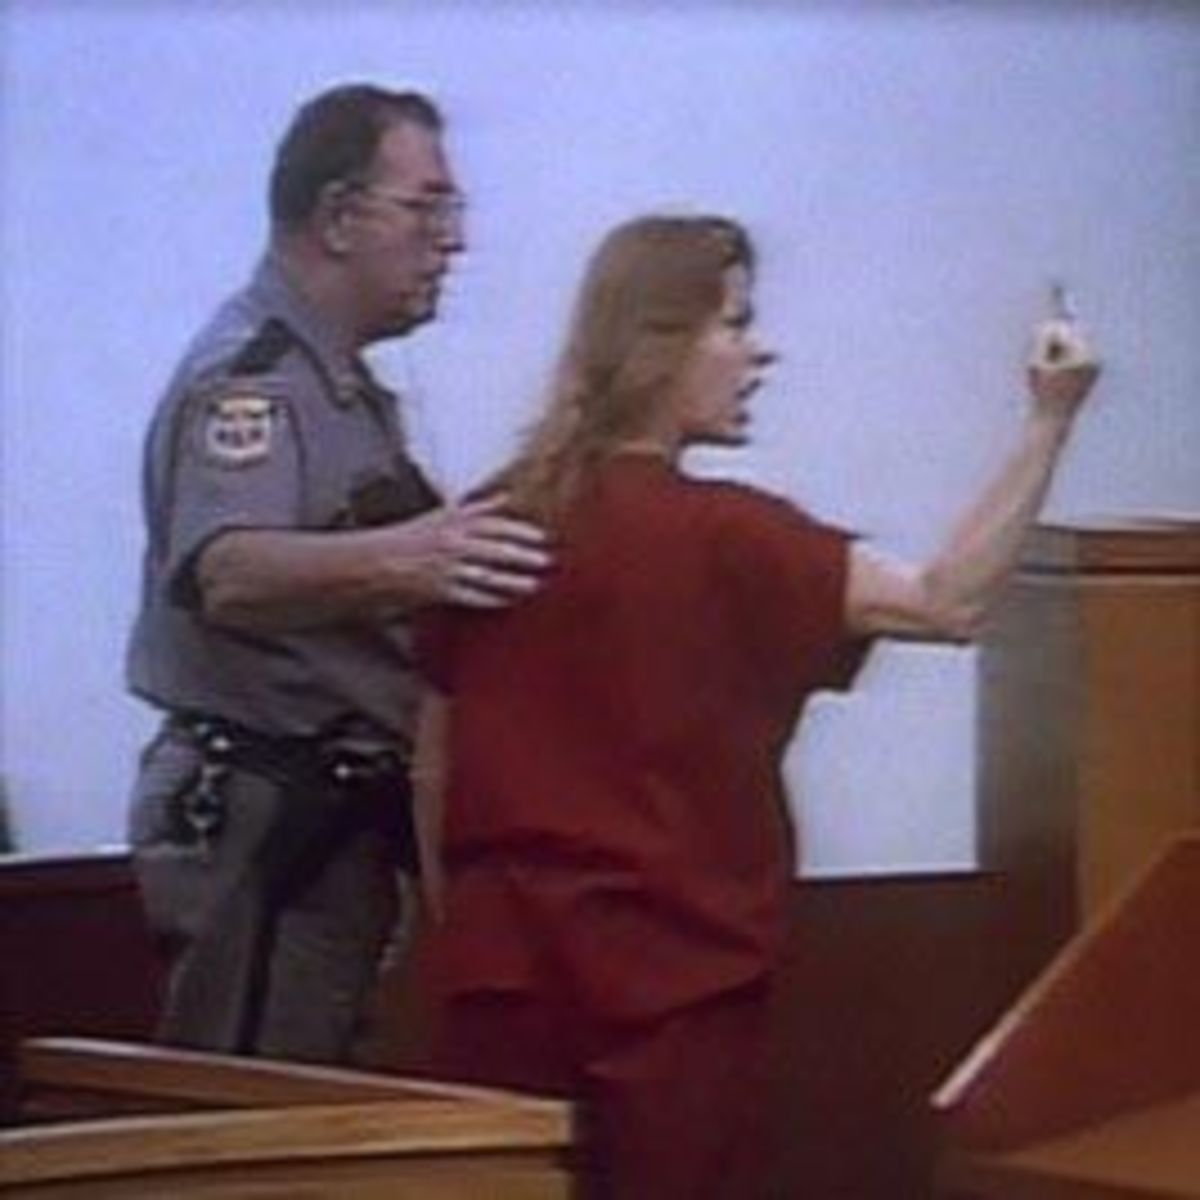 Aileen Wournos was not a happy camper at her trial.